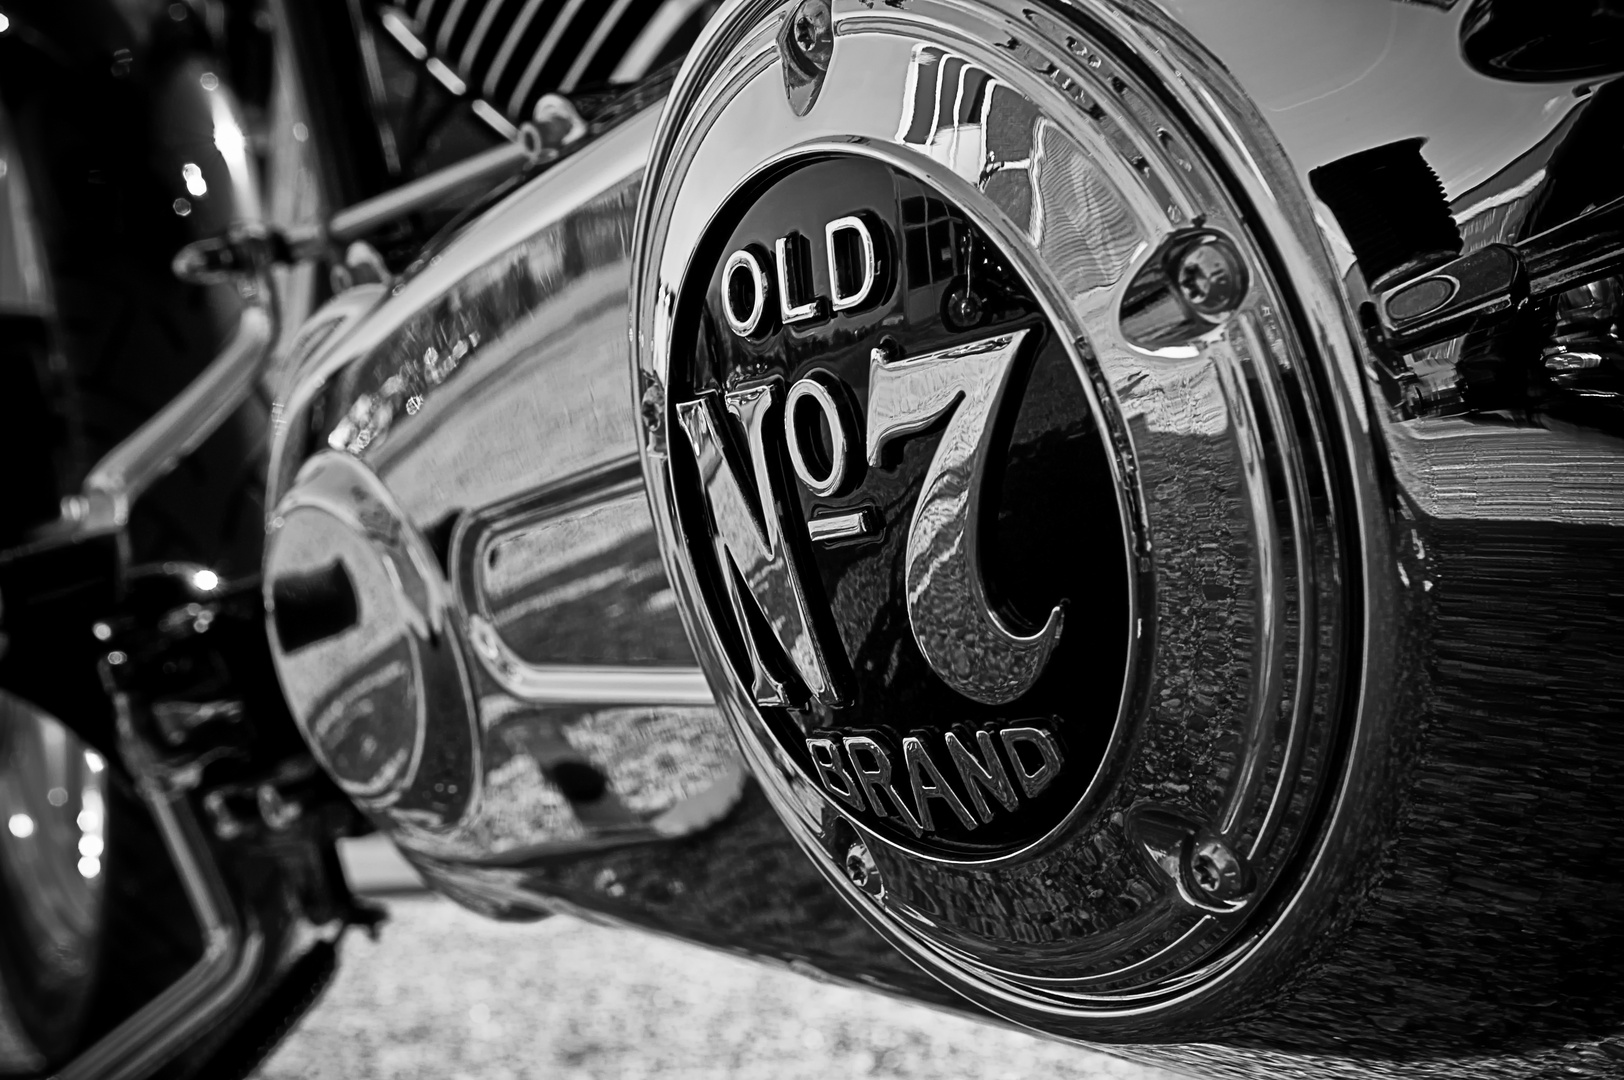 Old No.7 Brand